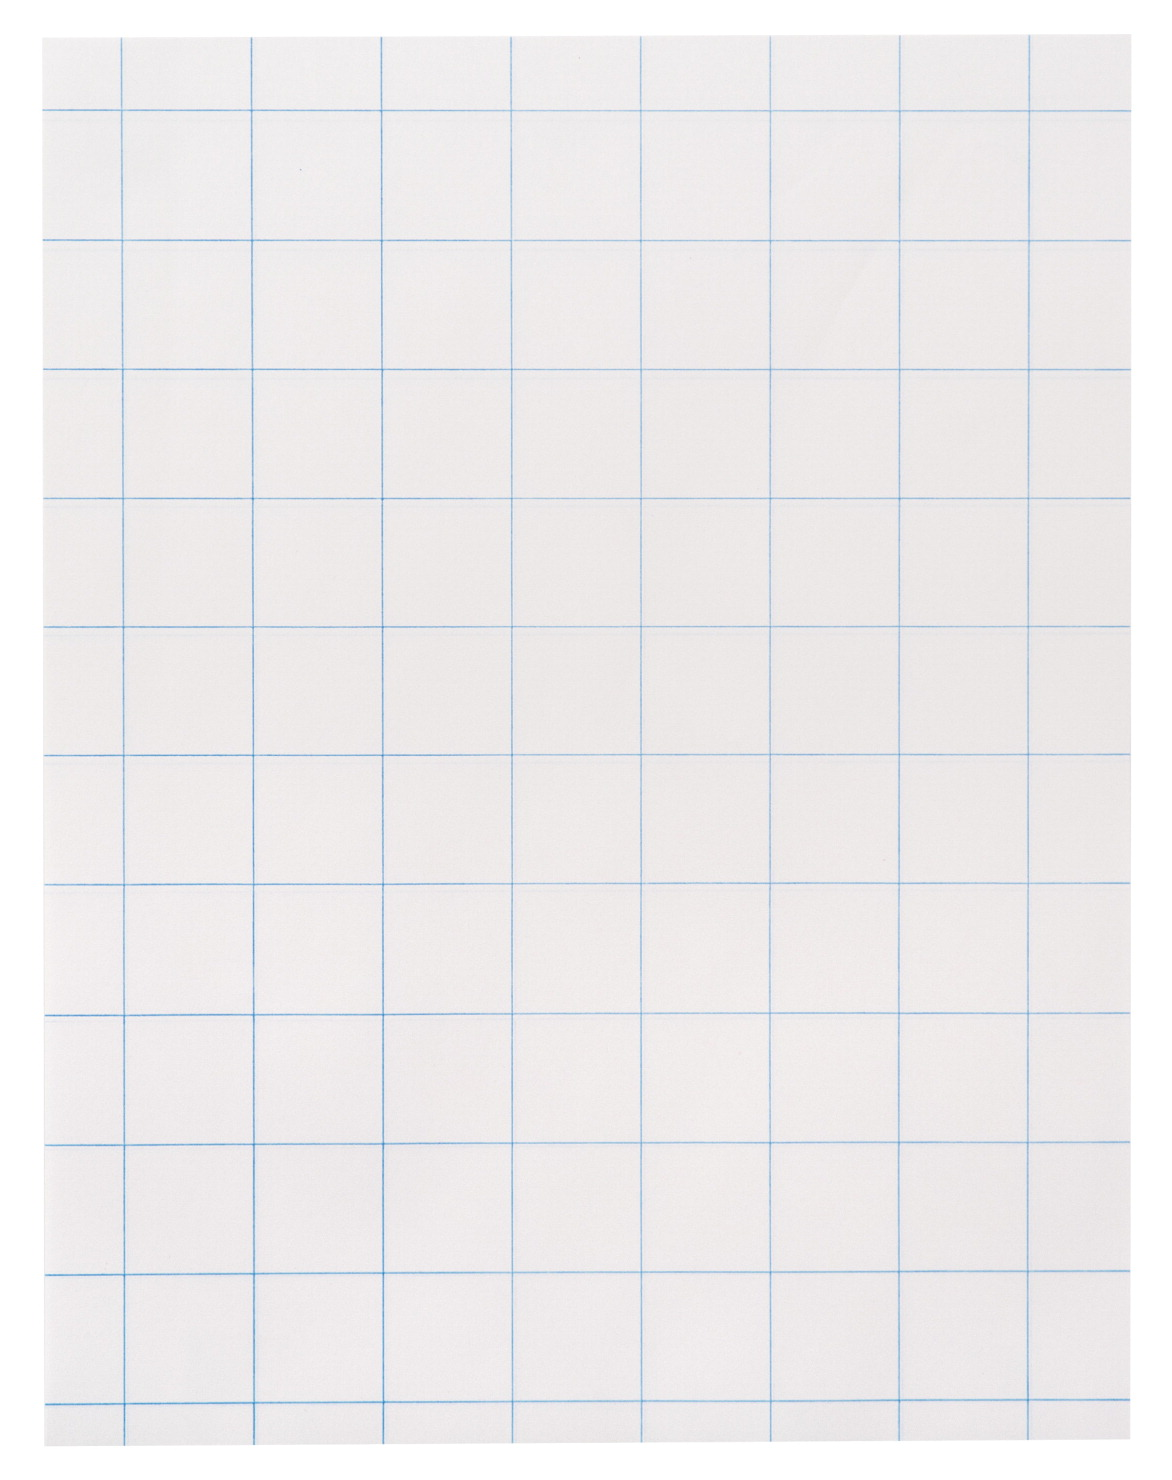 This is a photo of Gutsy Large Grid Paper Printable